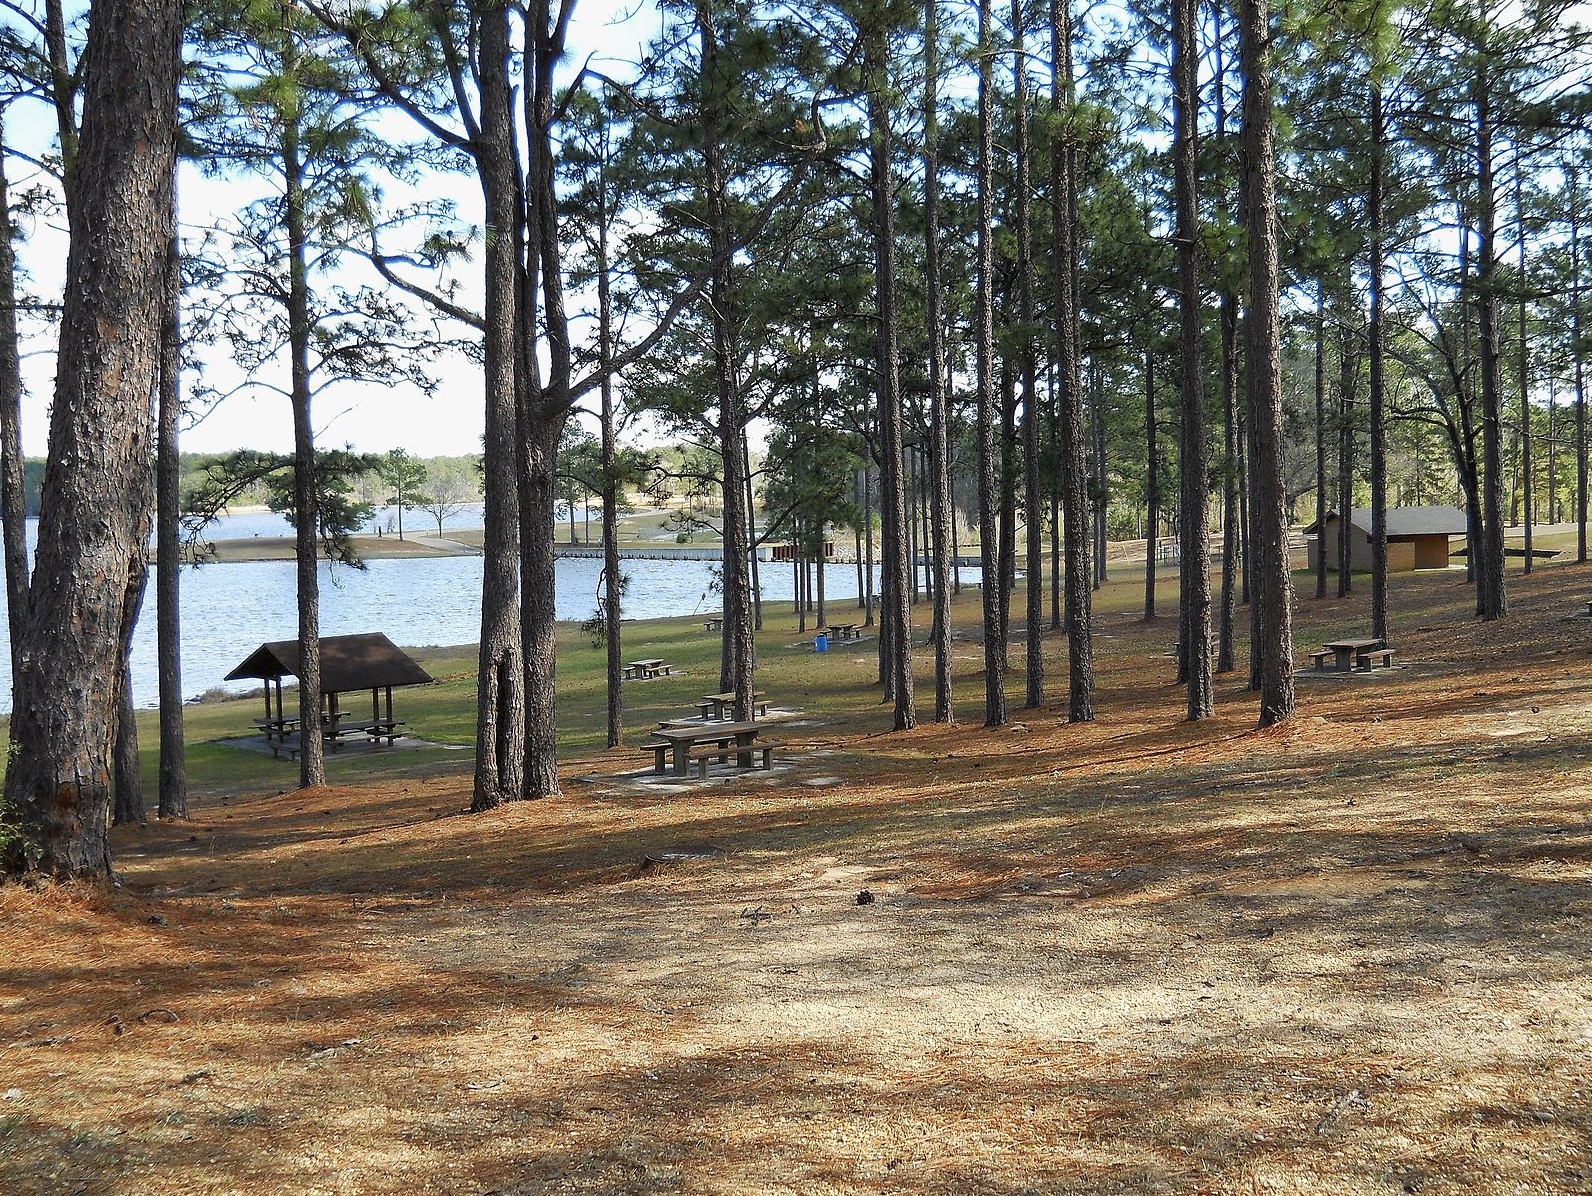 Slide 25 of 53: If you travel about 15 miles south of Hattiesburg, you'll end up at Paul B. Johnson State Park on Geiger Lake. Although the nature trails and 225-acre freshwater lake are the main attractions, you can also have fun with the disc golf course, splash pad and picnic areas. You can even make a weekend out of it with both RV and tent campsites, cabins and cottages.